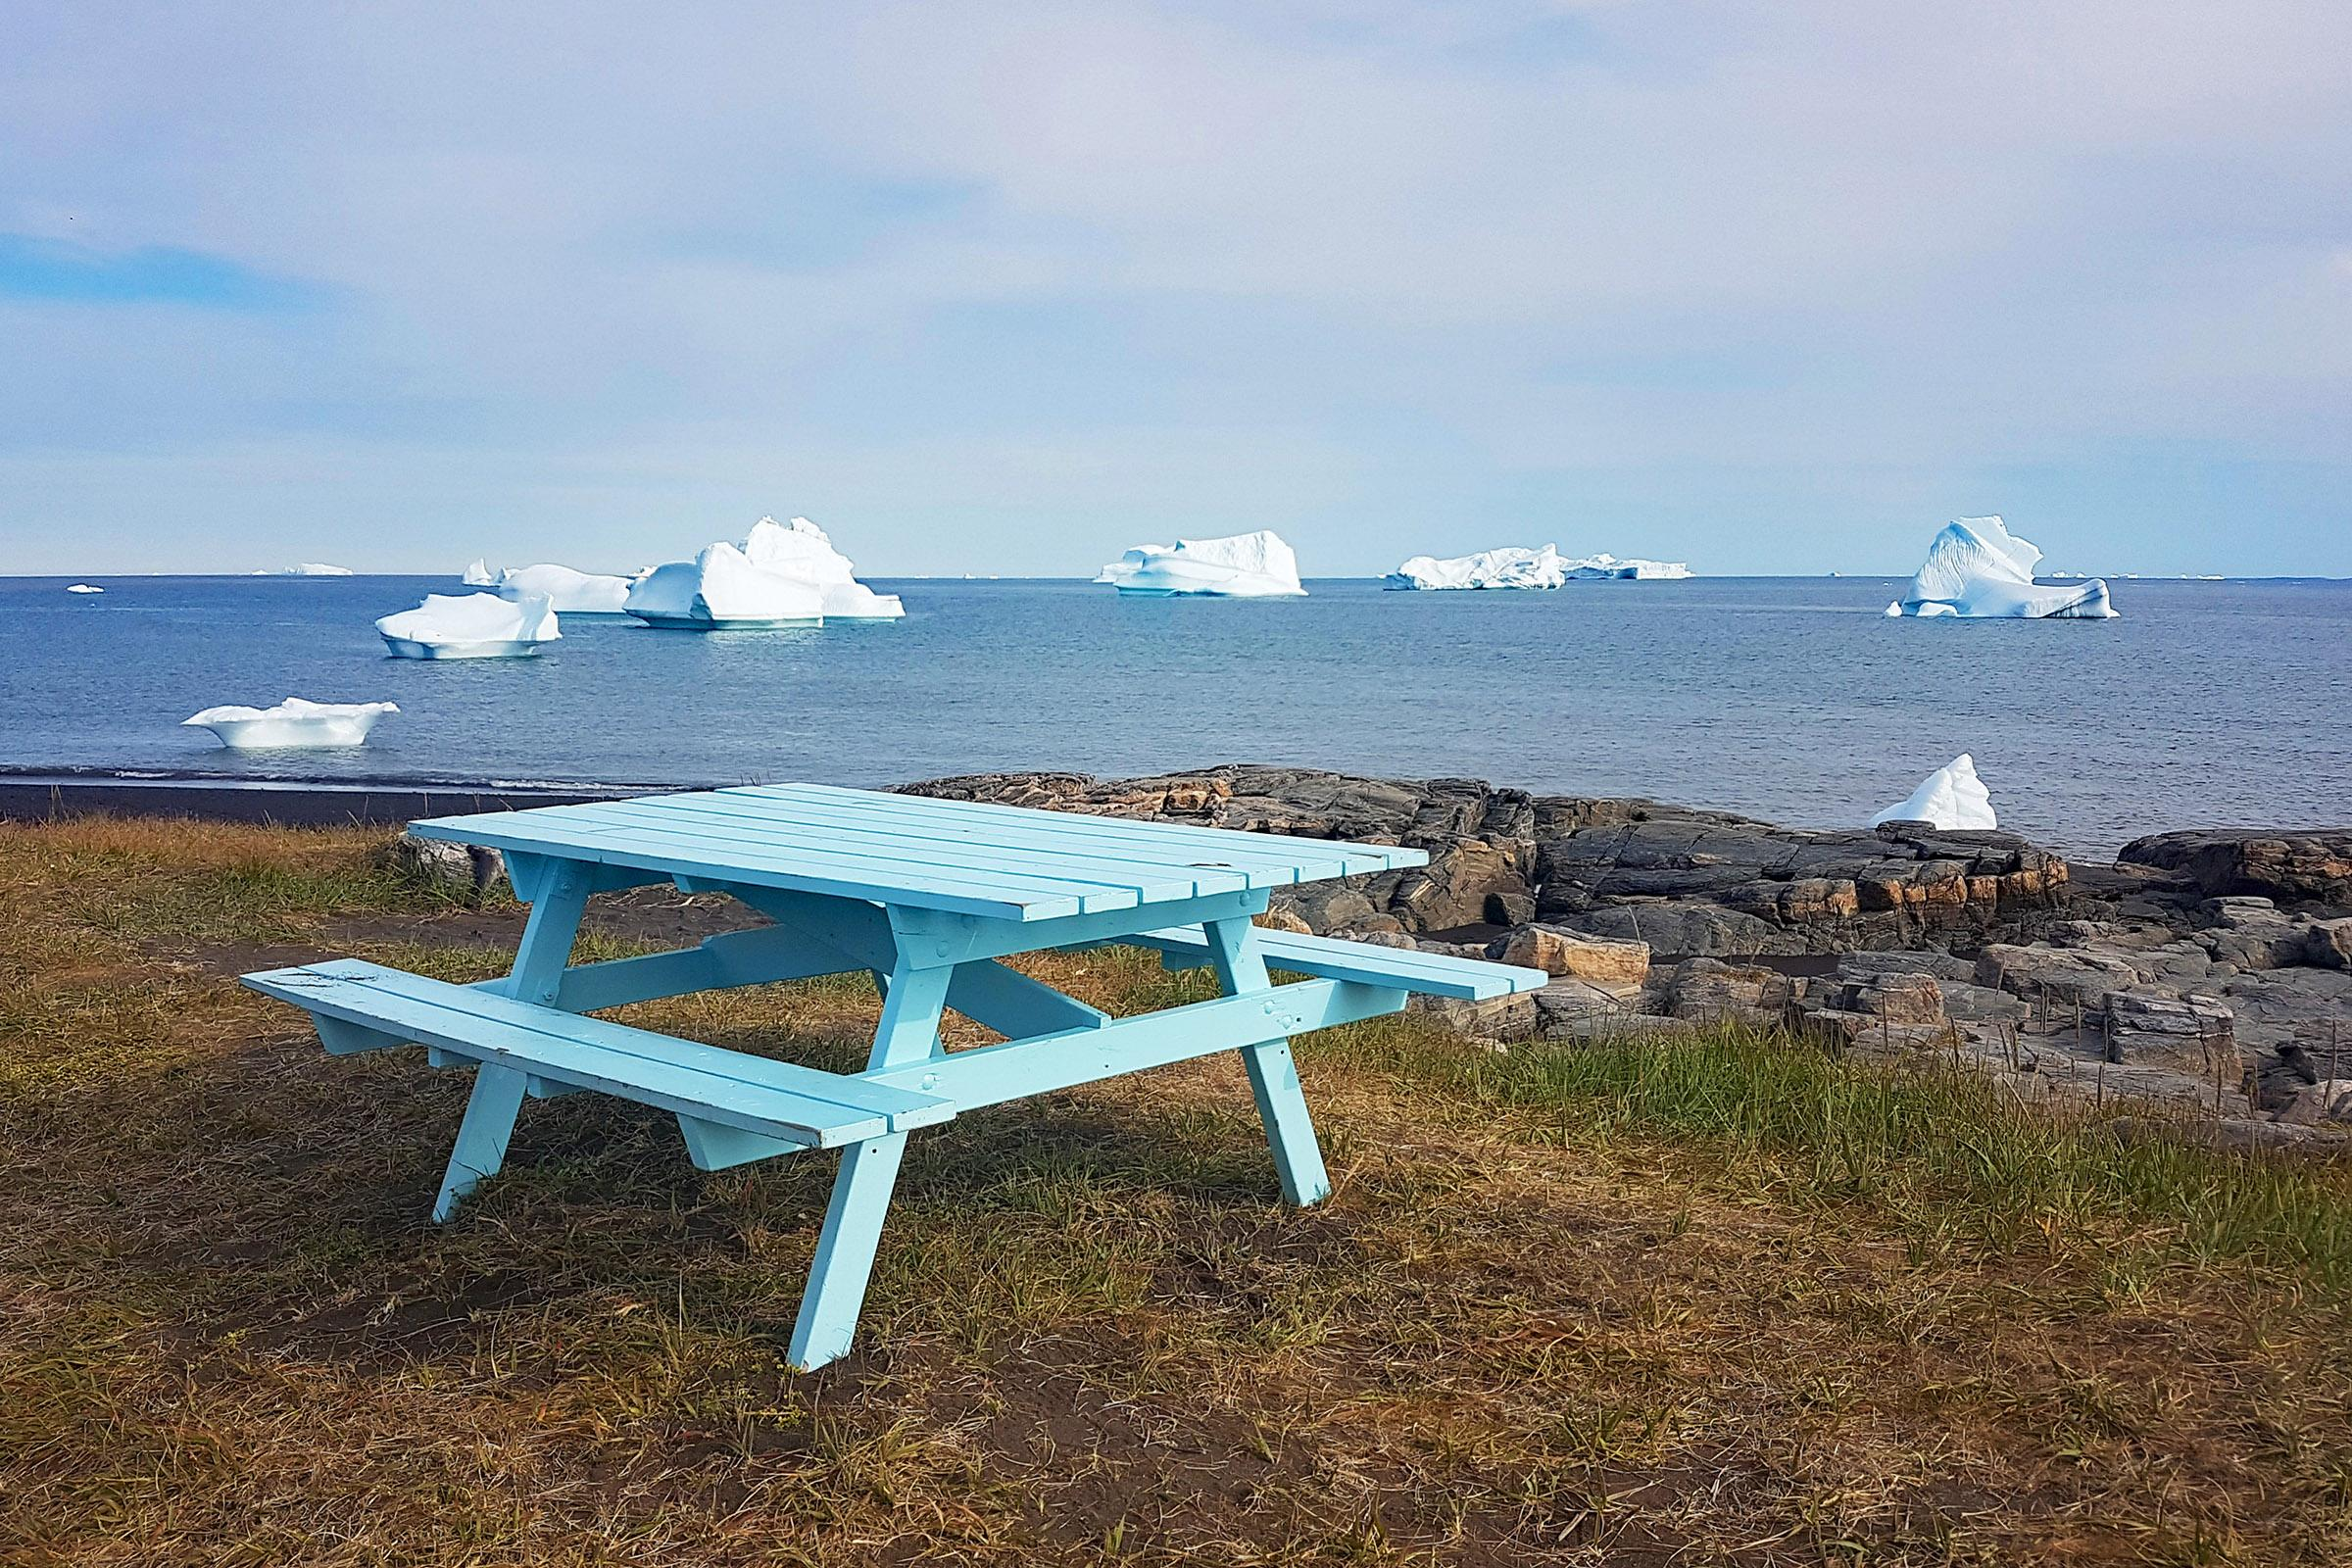 Picnic table with icebergs in the background in Qeqertarsuaq on Disko Island in Greenland. Photo by Jurga Rubinovaite. Visit Greenland